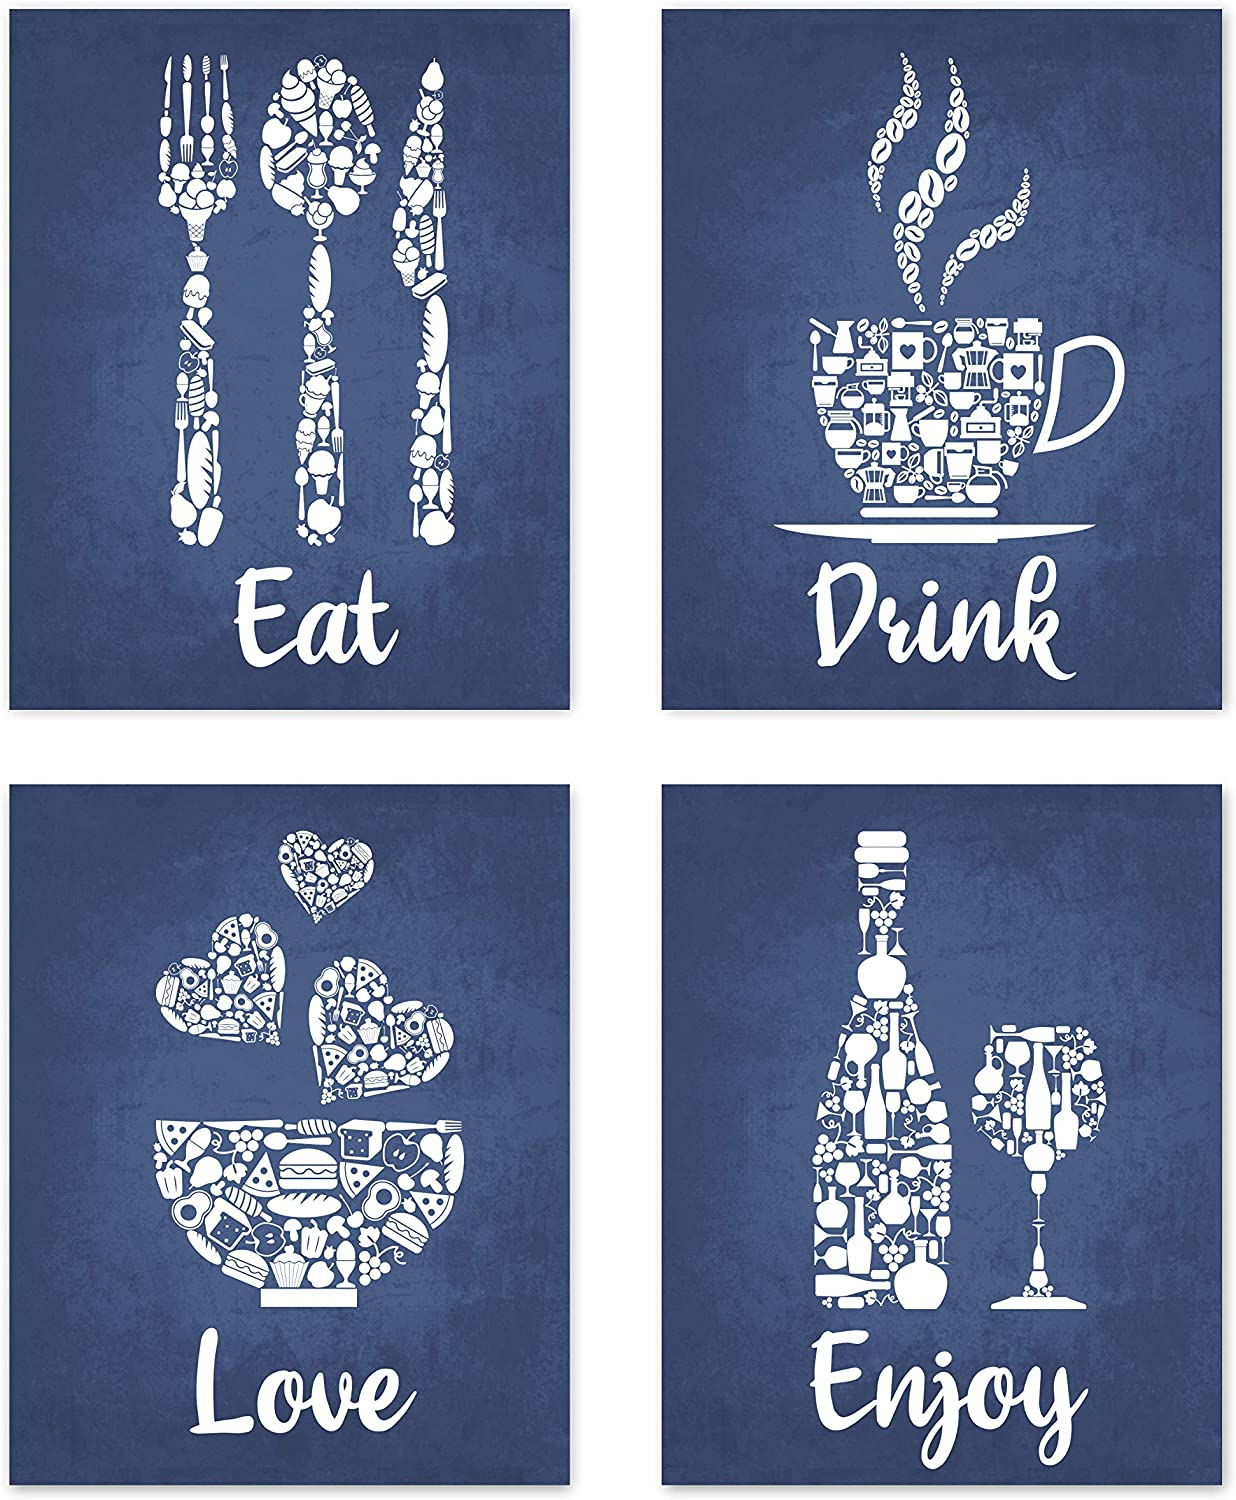 Navy Blue White Mosaic Vintage Inspirational Kitchen Restaurant Cafe Bar Wall Art Decorations Eat Drink Love Wine Coffee Hearts Prints Posters Signs Sets Rustic Farmhouse Country Home Dining Room House Decor Funny Sayings Quotes 8x10 UNFRAMED